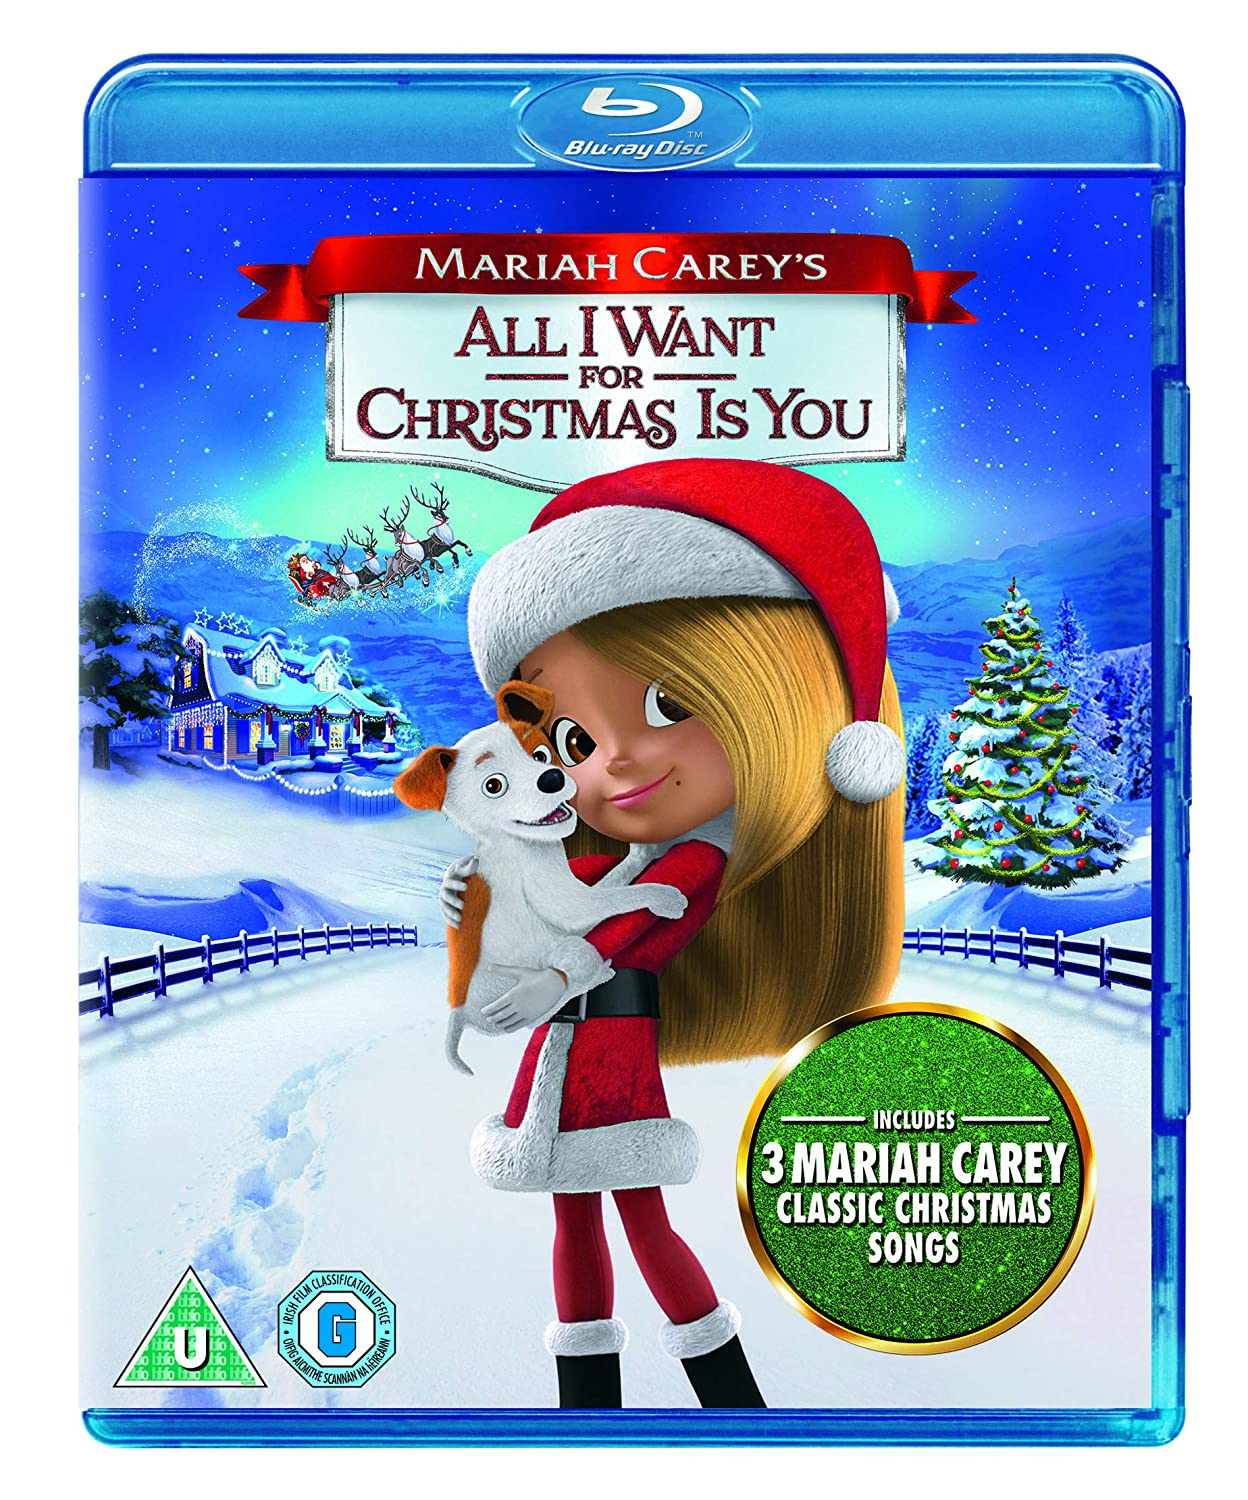 Mariah Carey's All I Want for Christmas is You BD Blu-ray +